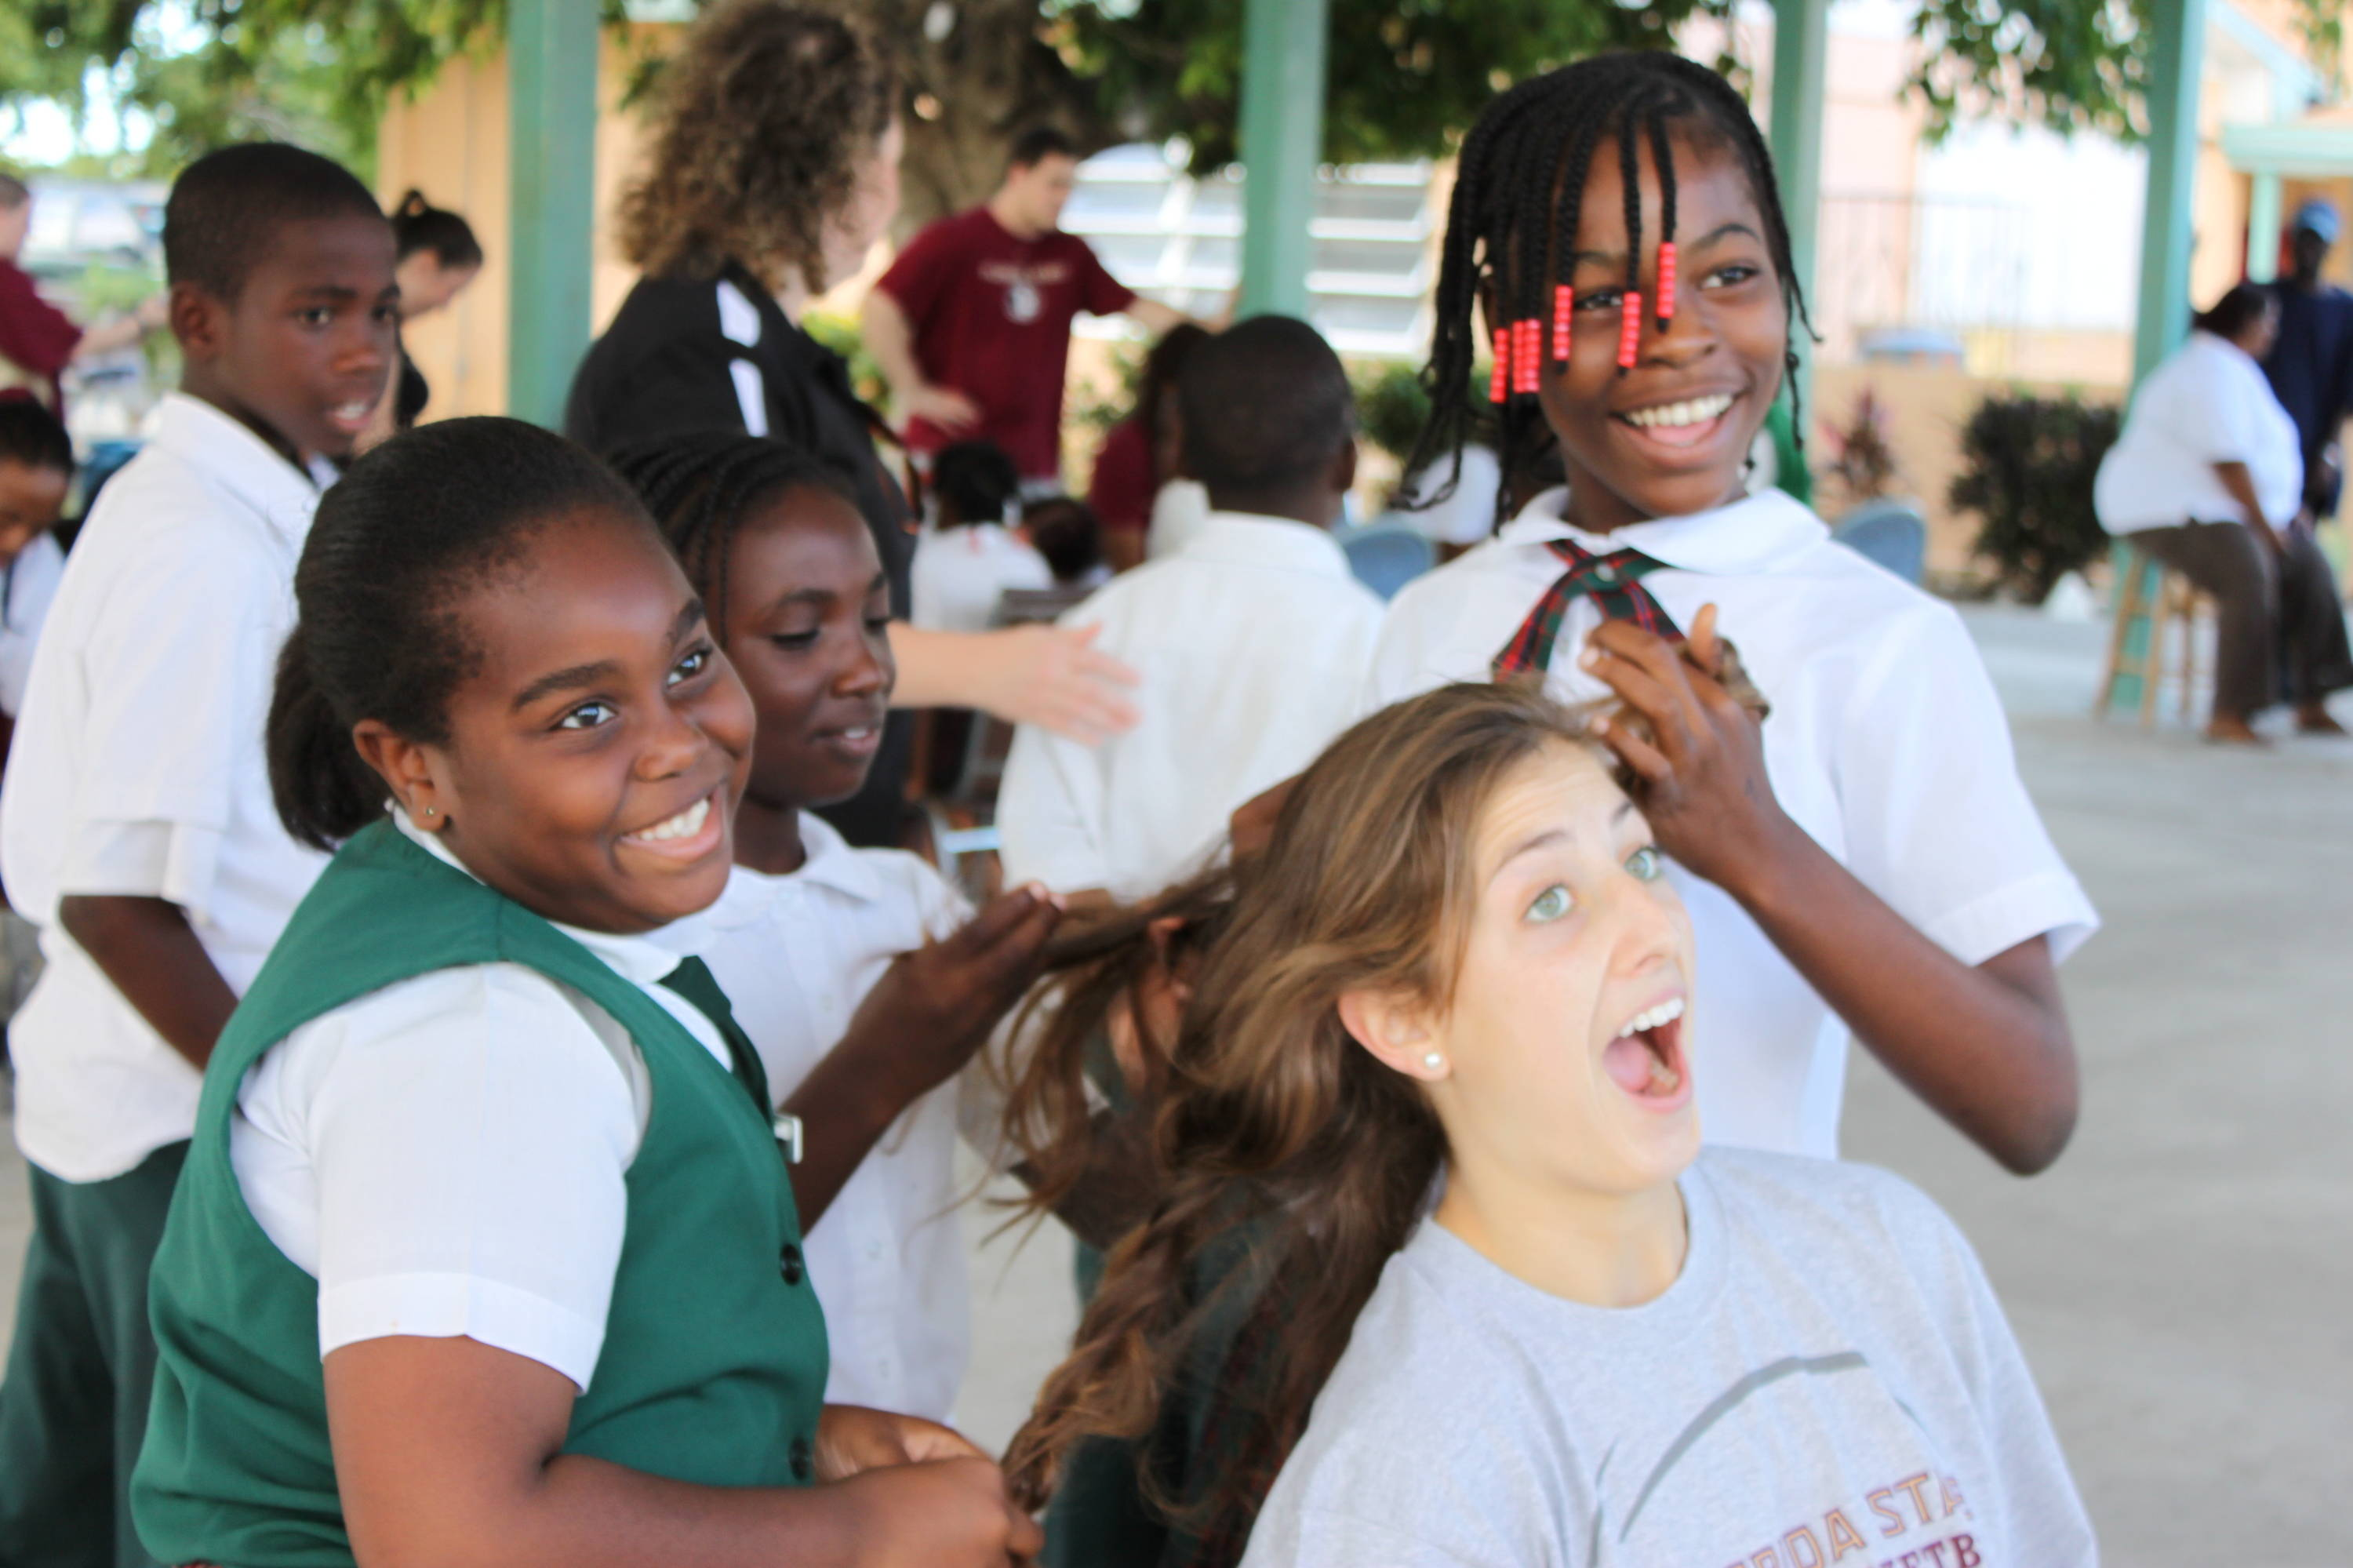 After getting their new shoes, some of the students wanted to braid Leonor Rodriguez's hair.